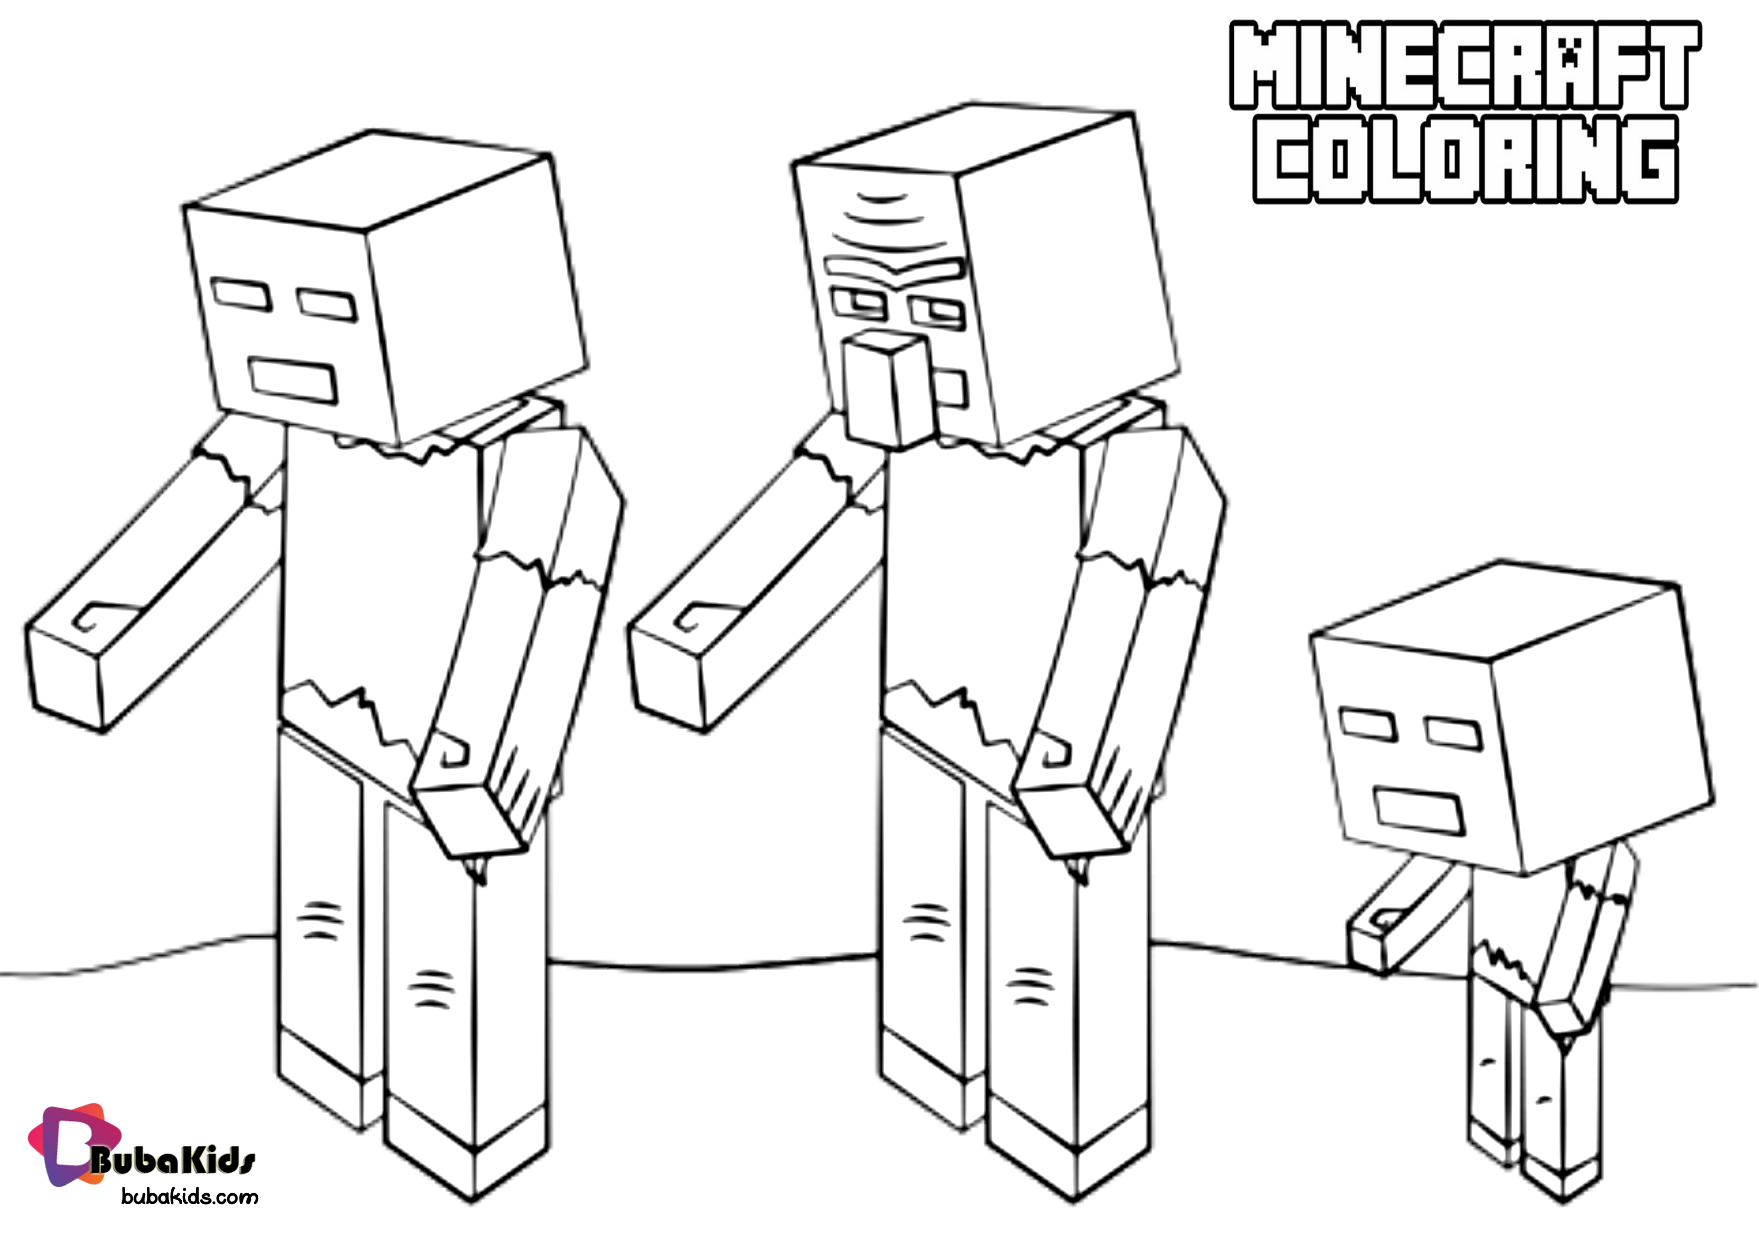 Minecraft Coloring Zombies Coloring Page Collection Of Cartoon Coloring Pages For Teenage In 2020 Minecraft Coloring Pages Crayola Coloring Pages Minecraft Printables